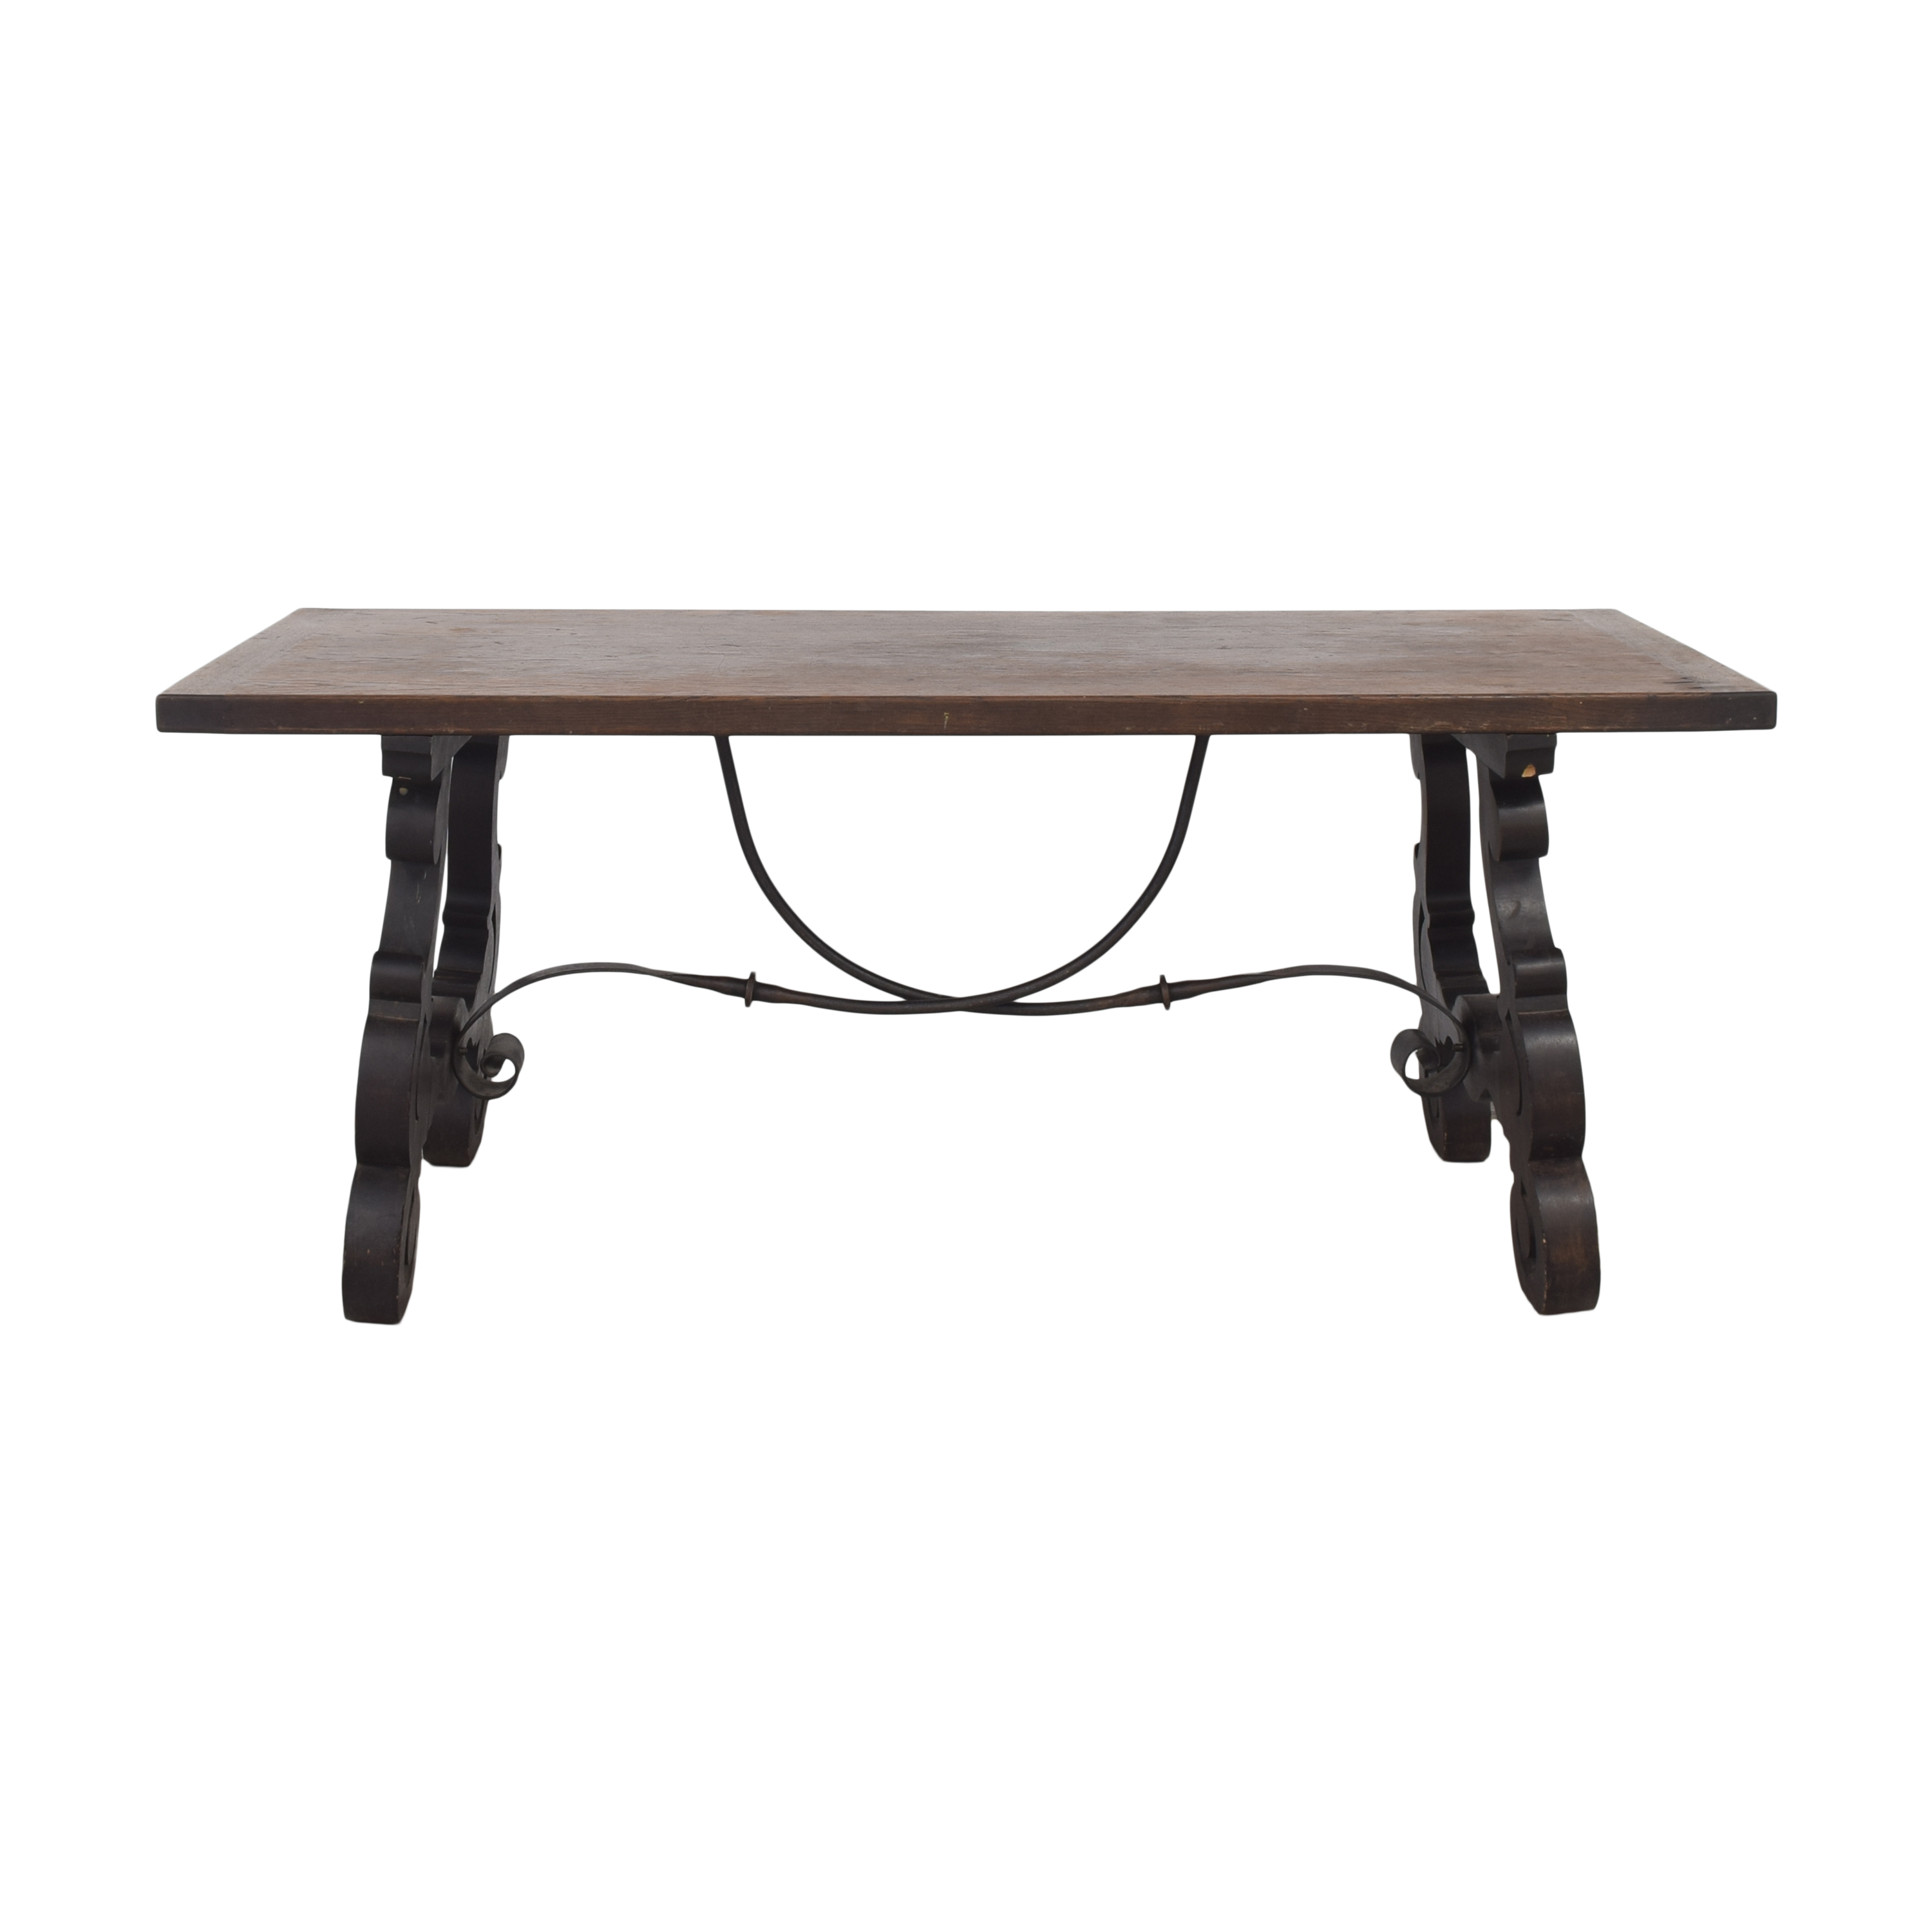 shop ABC Carpet & Home Dining Table ABC Carpet & Home Dinner Tables